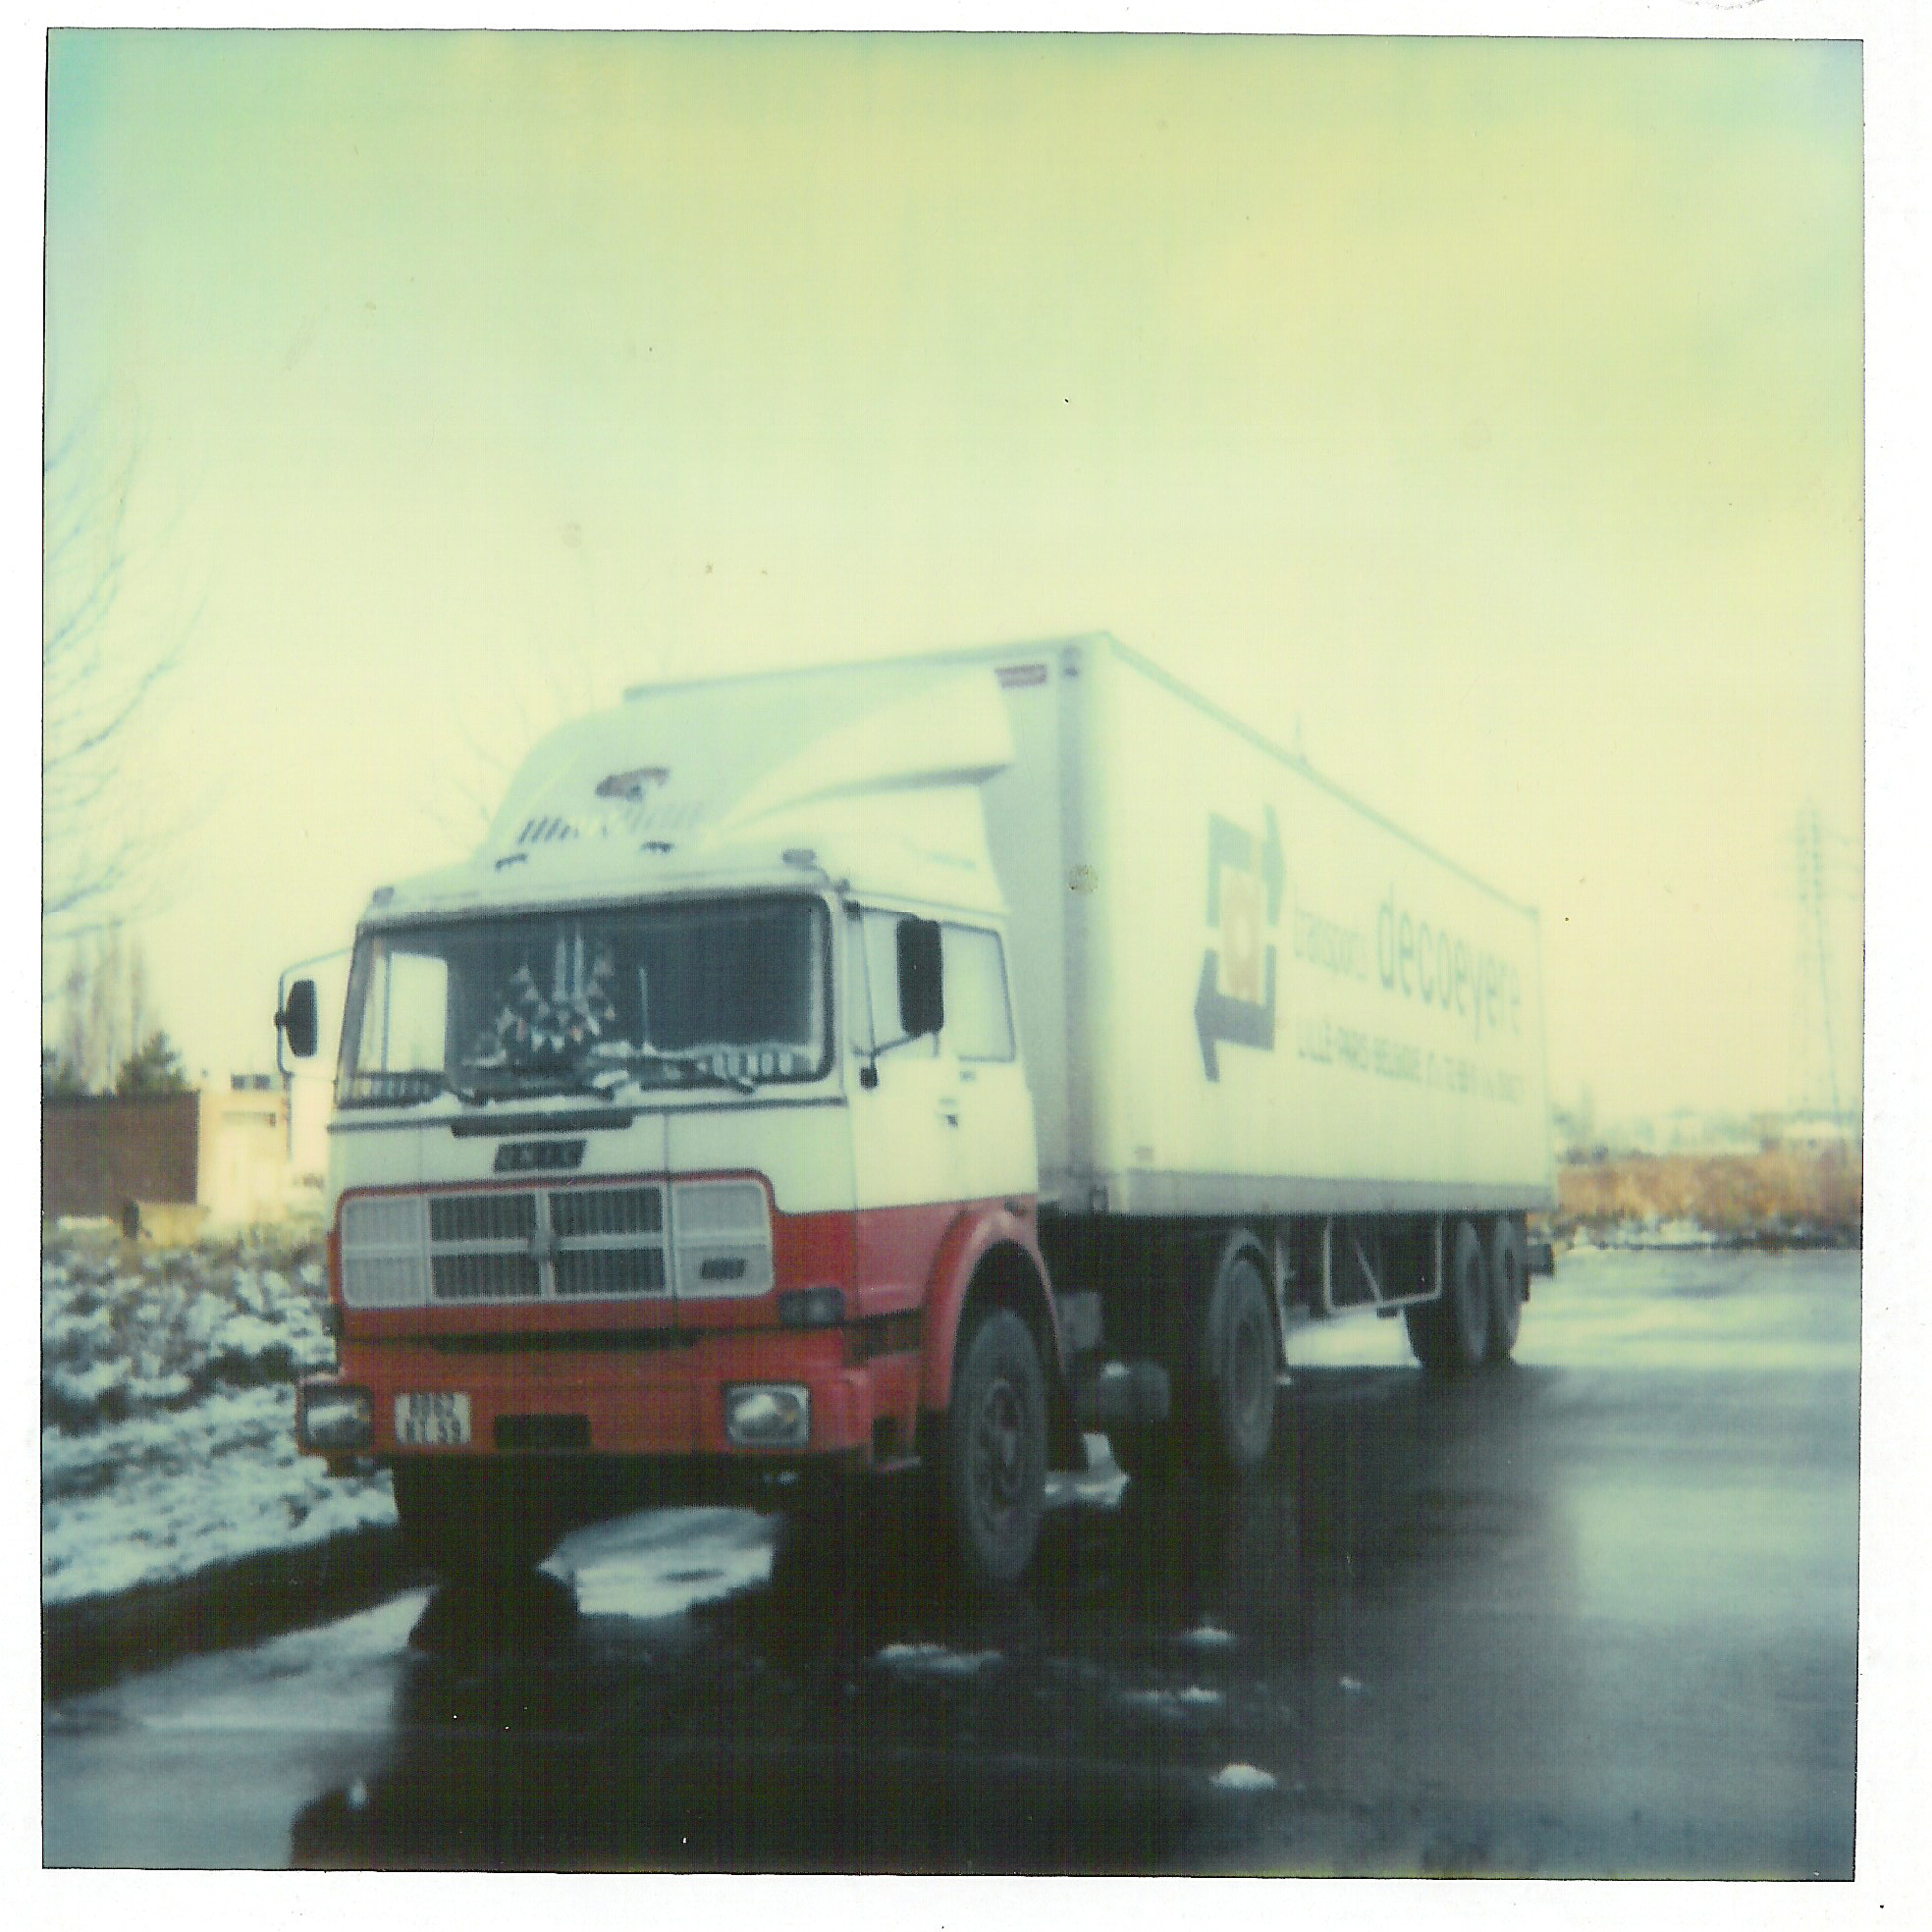 camion 09